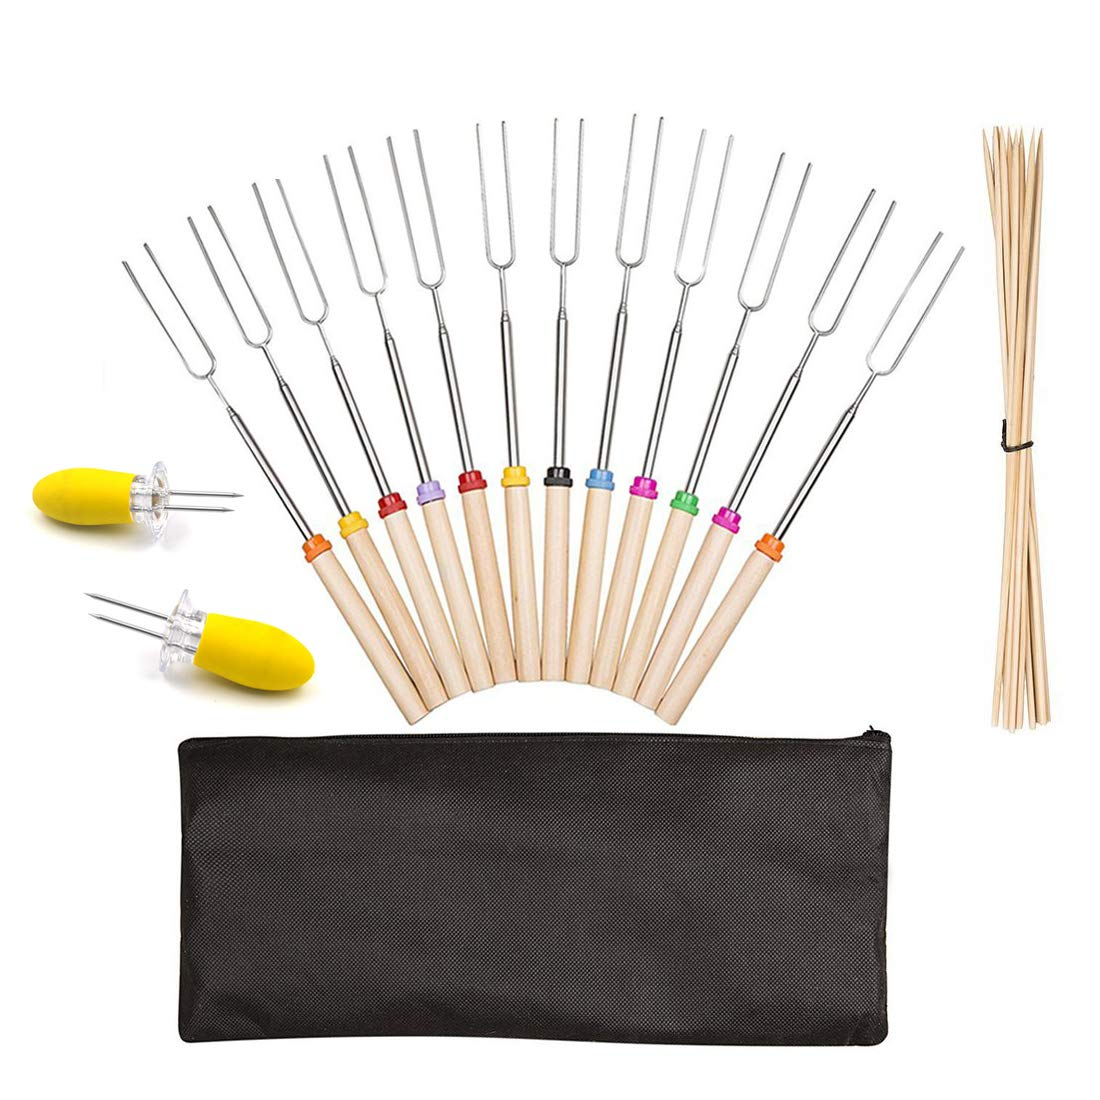 Marshmallow Roasting Sticks, Fincly Extendable 30inch Stainless Steel Roasting Sticks Set of 12 Telescoping Barbecue & 10 Bamboo Skewers Smores Hot Dog Forks For BBQ Campfire Pit With Carry Bag by Fincly